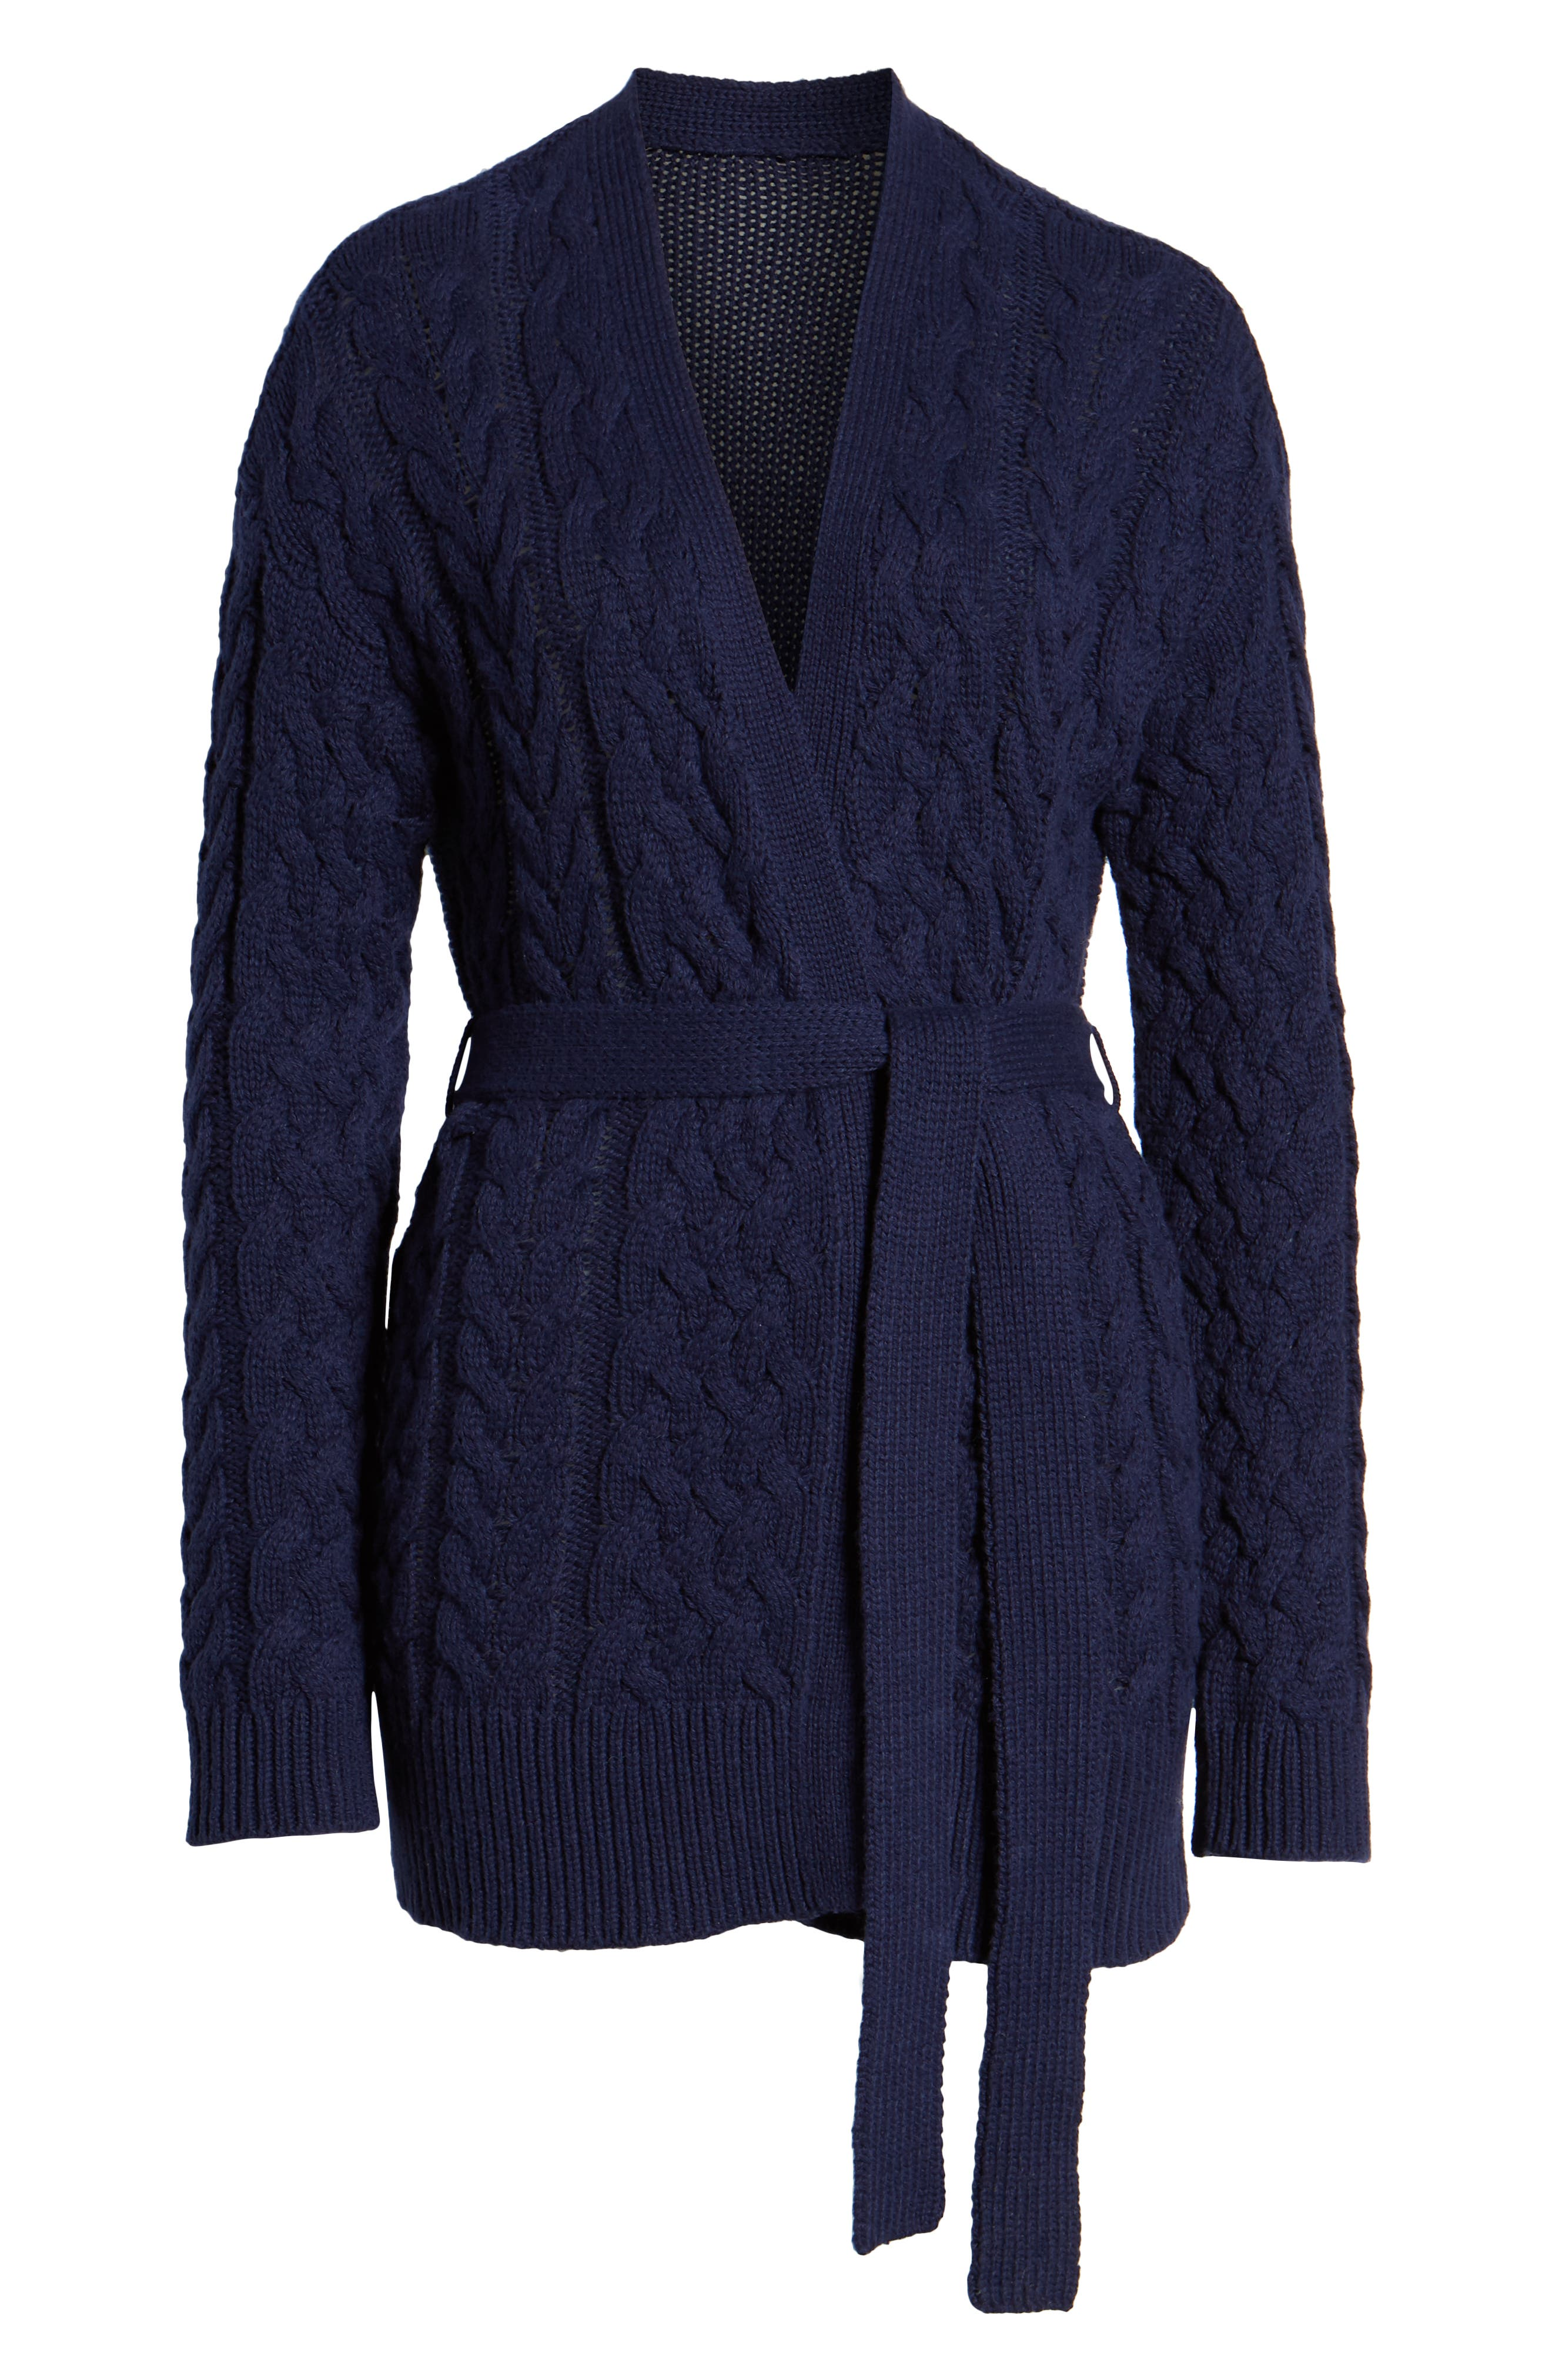 TREASURE & BOND,                             Cable Knit Belted Wrap Cardigan,                             Alternate thumbnail 6, color,                             NAVY MARITIME